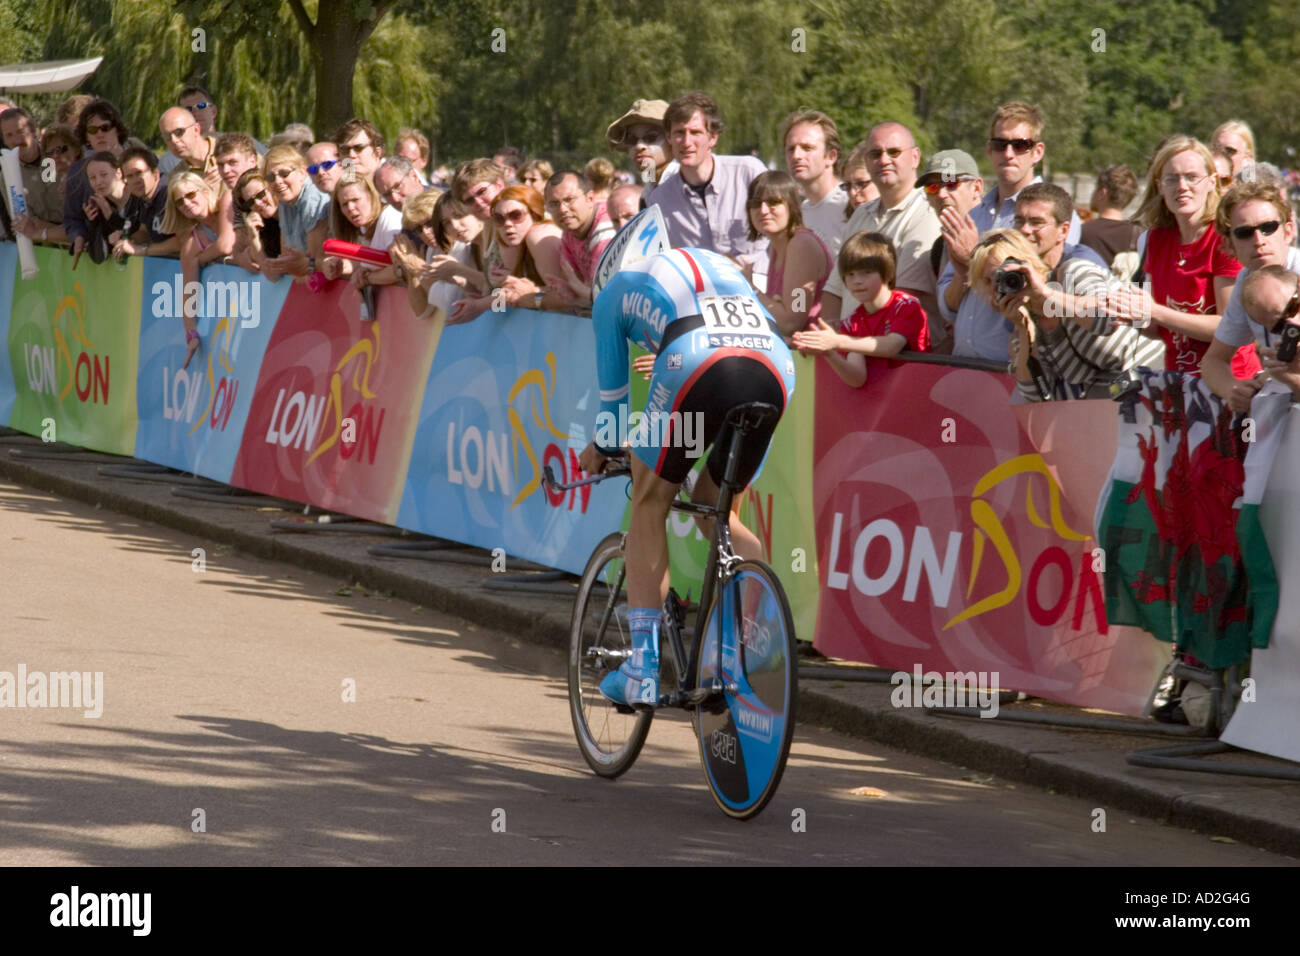 Spectators line the route to watch the Prologue stage of the 2007 Tour de France in  London - Stock Image